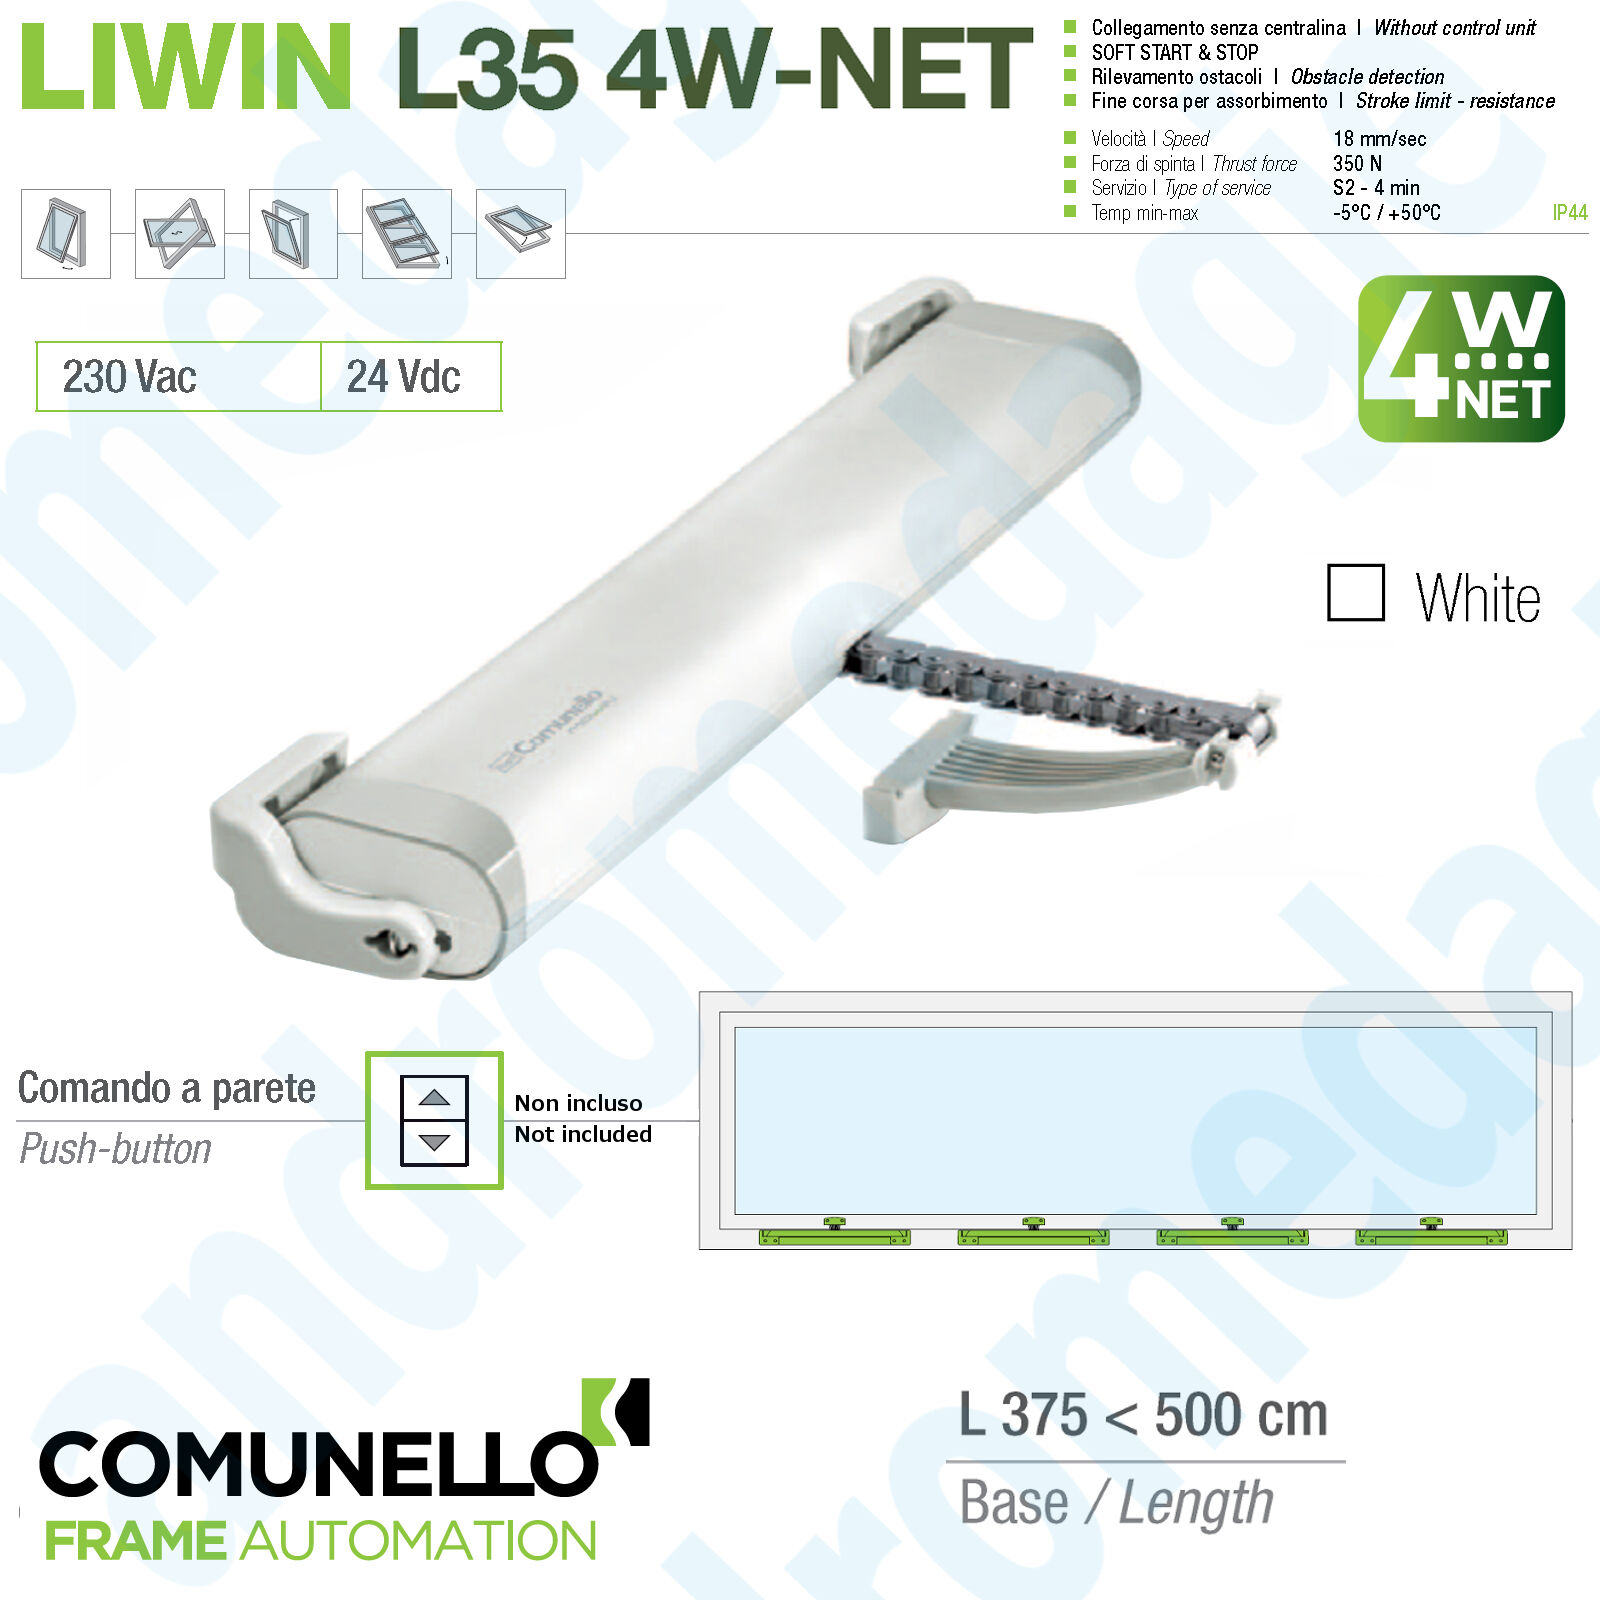 LIWIN L35 4W-NET 24V 350N WHITE Synchronized motors chain for windows